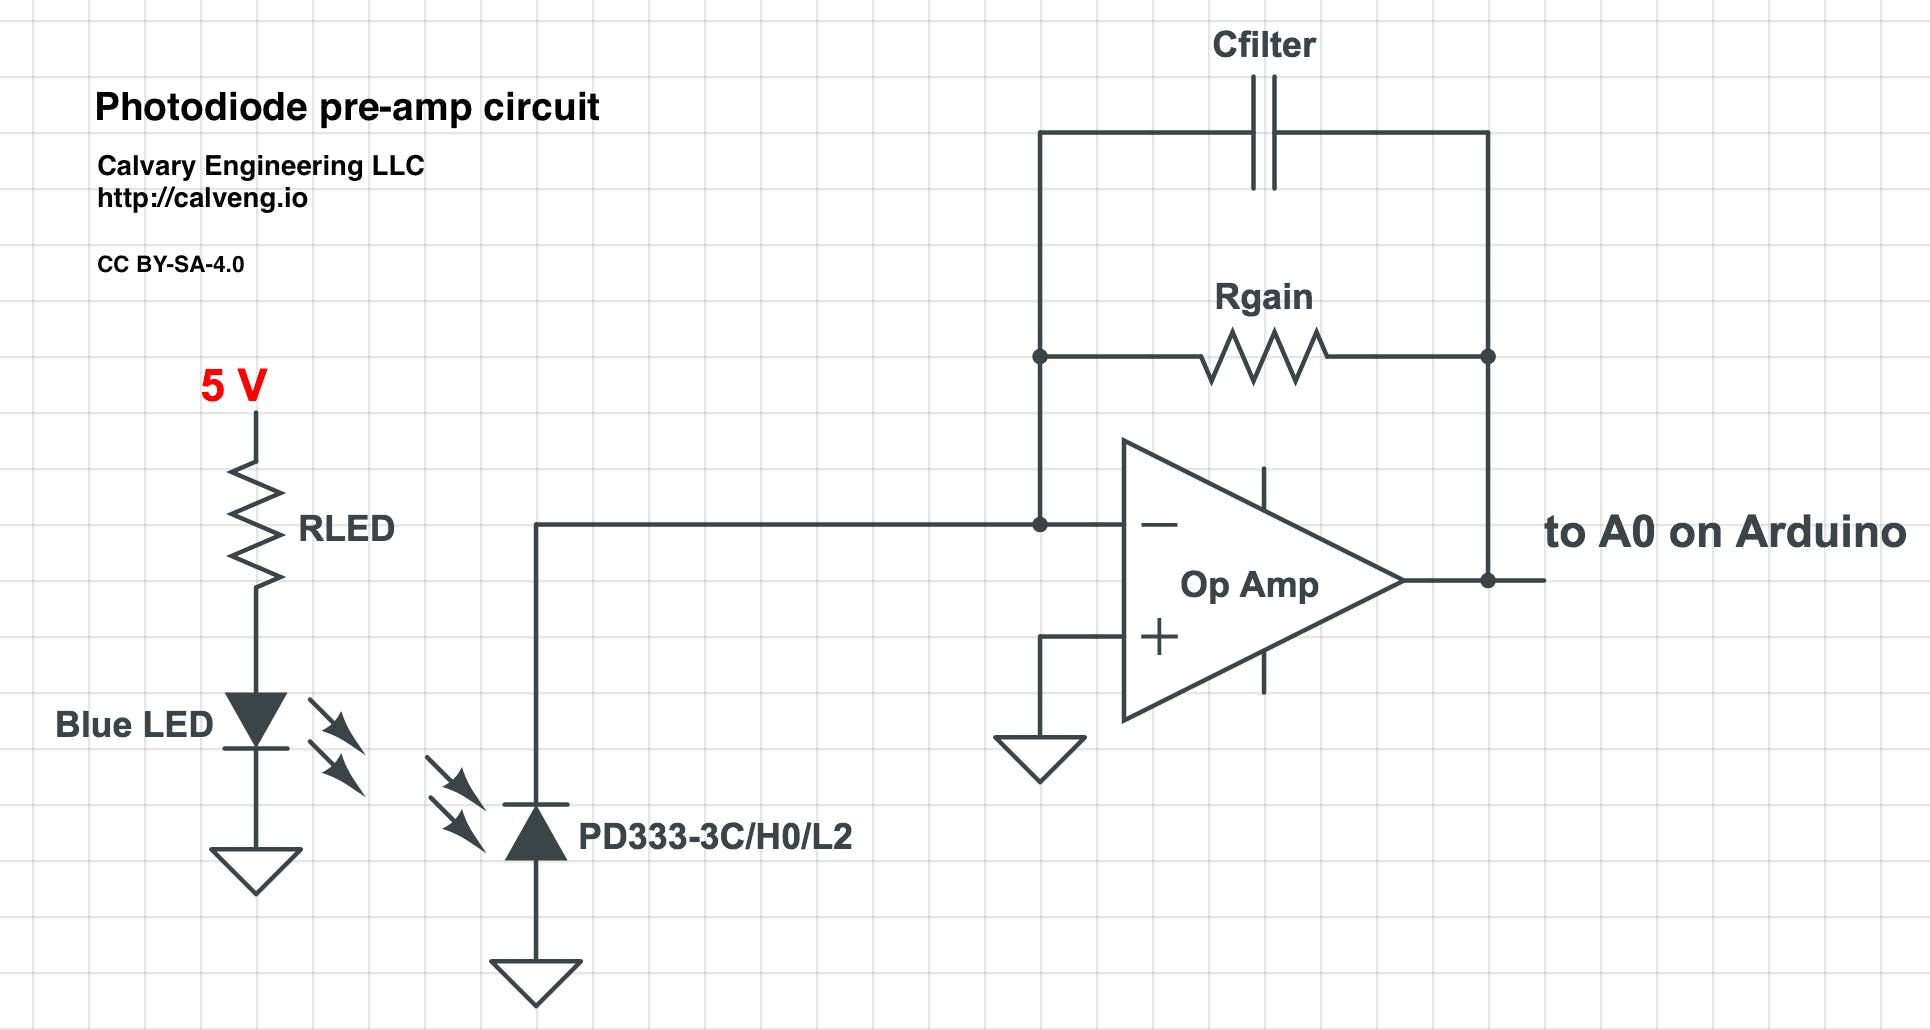 Photodiode preamp circuit. Adjust the values of the resistors and capacitors as appropriate. I would suggest a value of 1kiloOhms for RLED, 1MegaOhms for Rgain and 100nanoFarads for the capacitor.